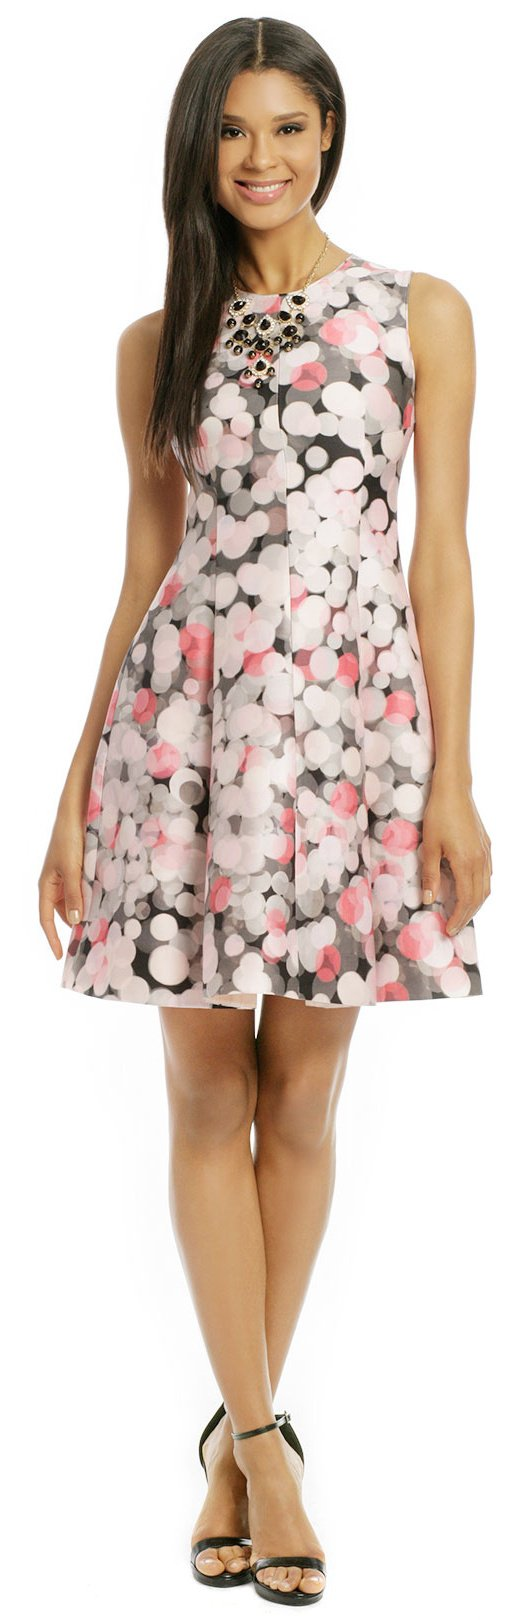 Kate Spade Bubbles Upon Bubbles Dress